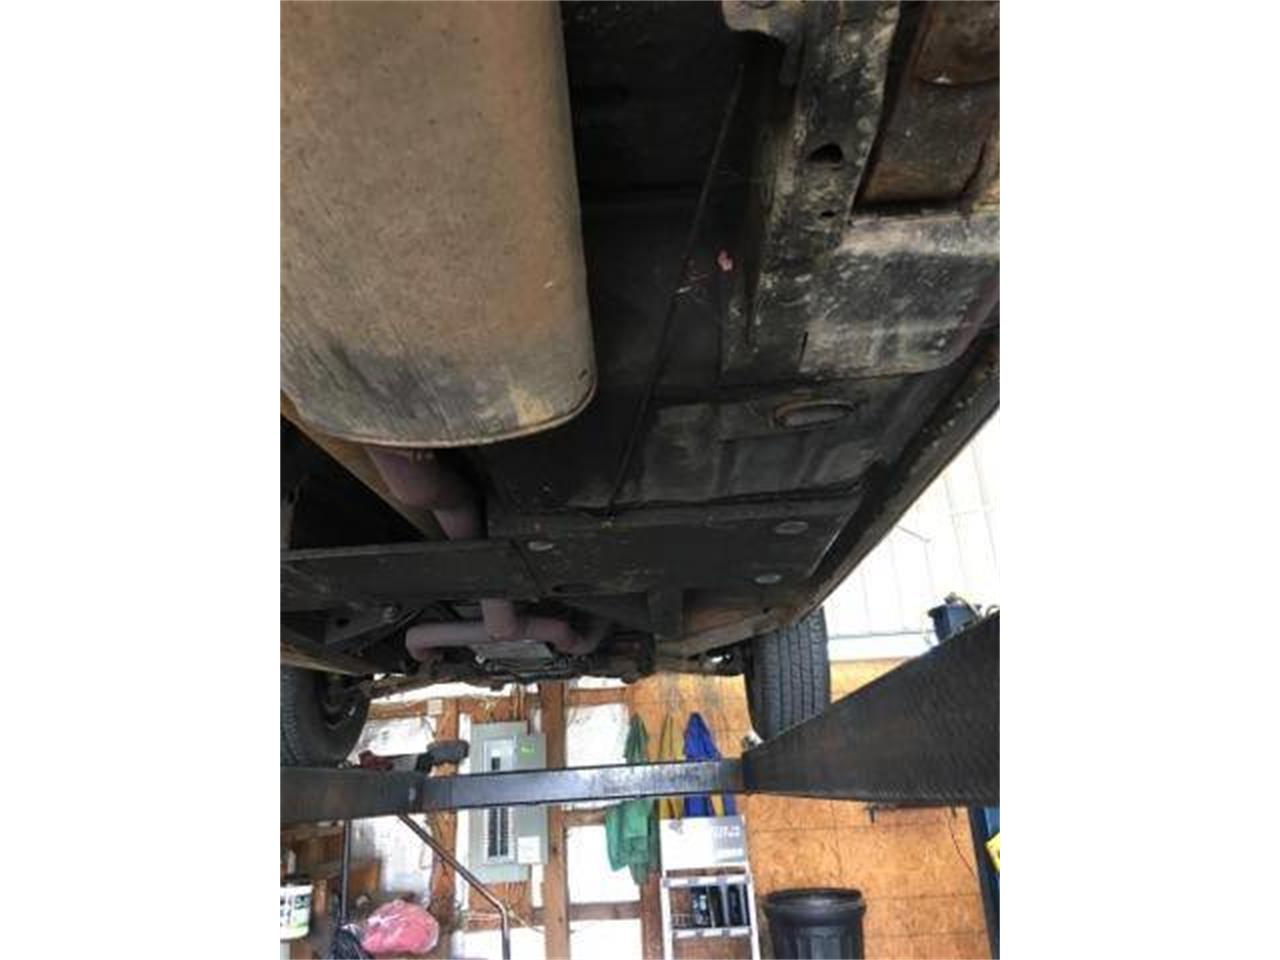 1968 Ford Mustang for sale in Hiram, GA – photo 32